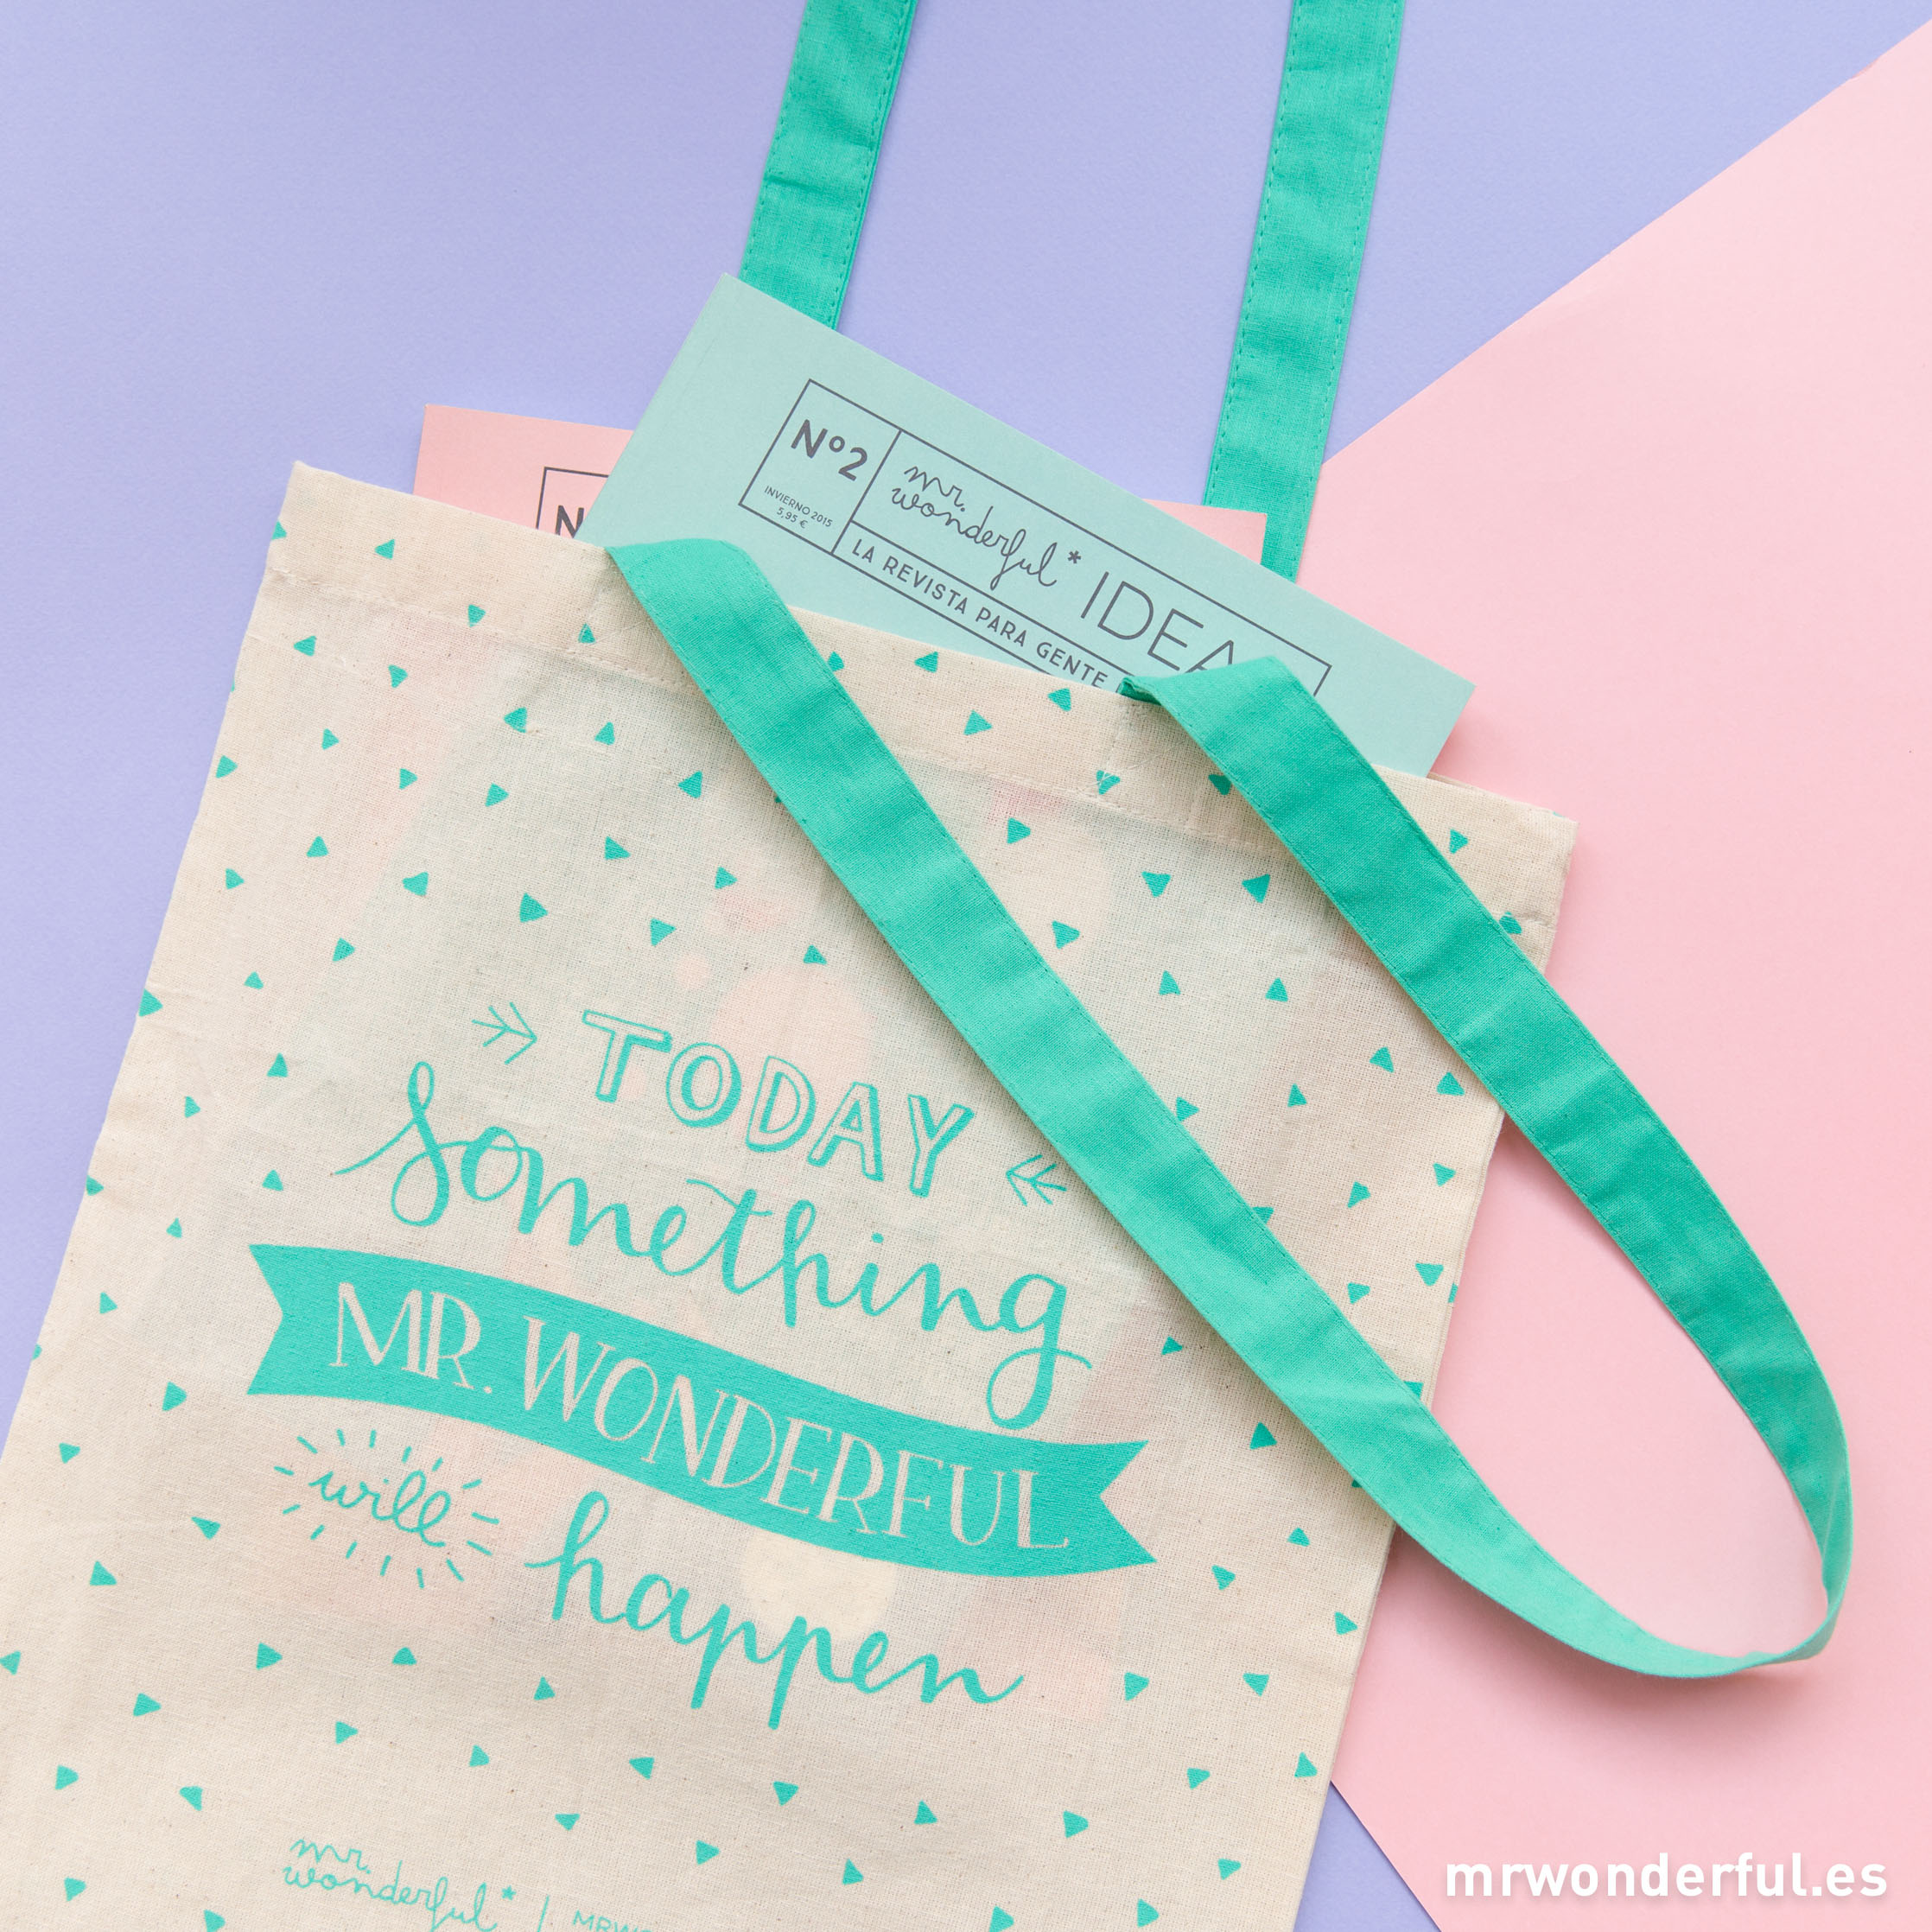 mrwonderful_8436547193905_Revista-MrWonderful-vol-2-promocion-totebag-21